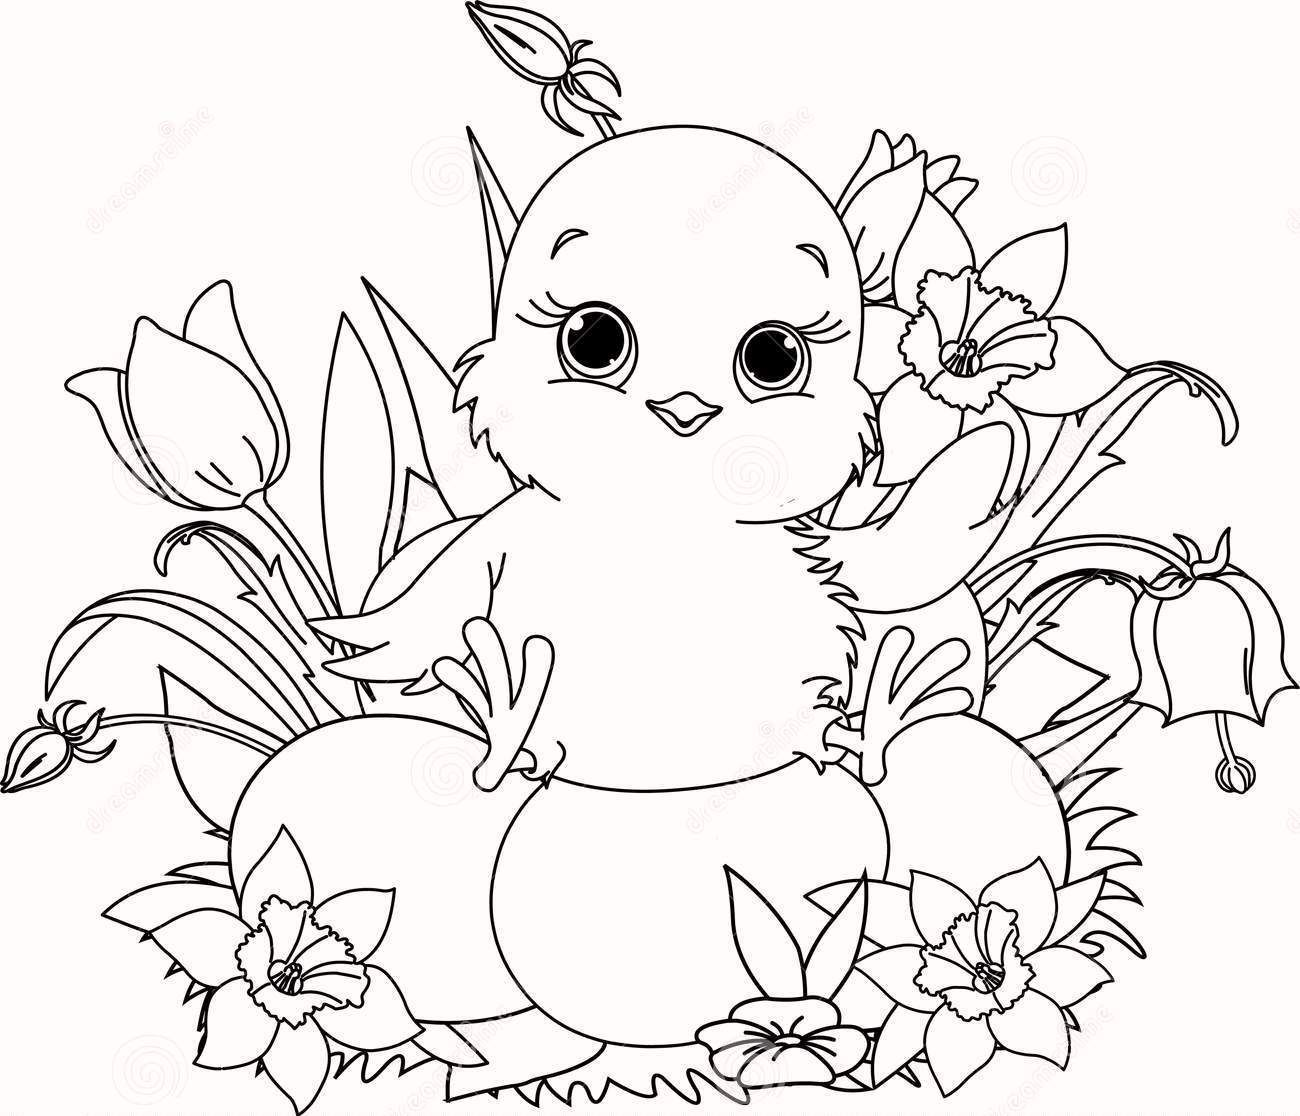 Chick Easter coloring pages | Religious Easter Coloring Pages ...